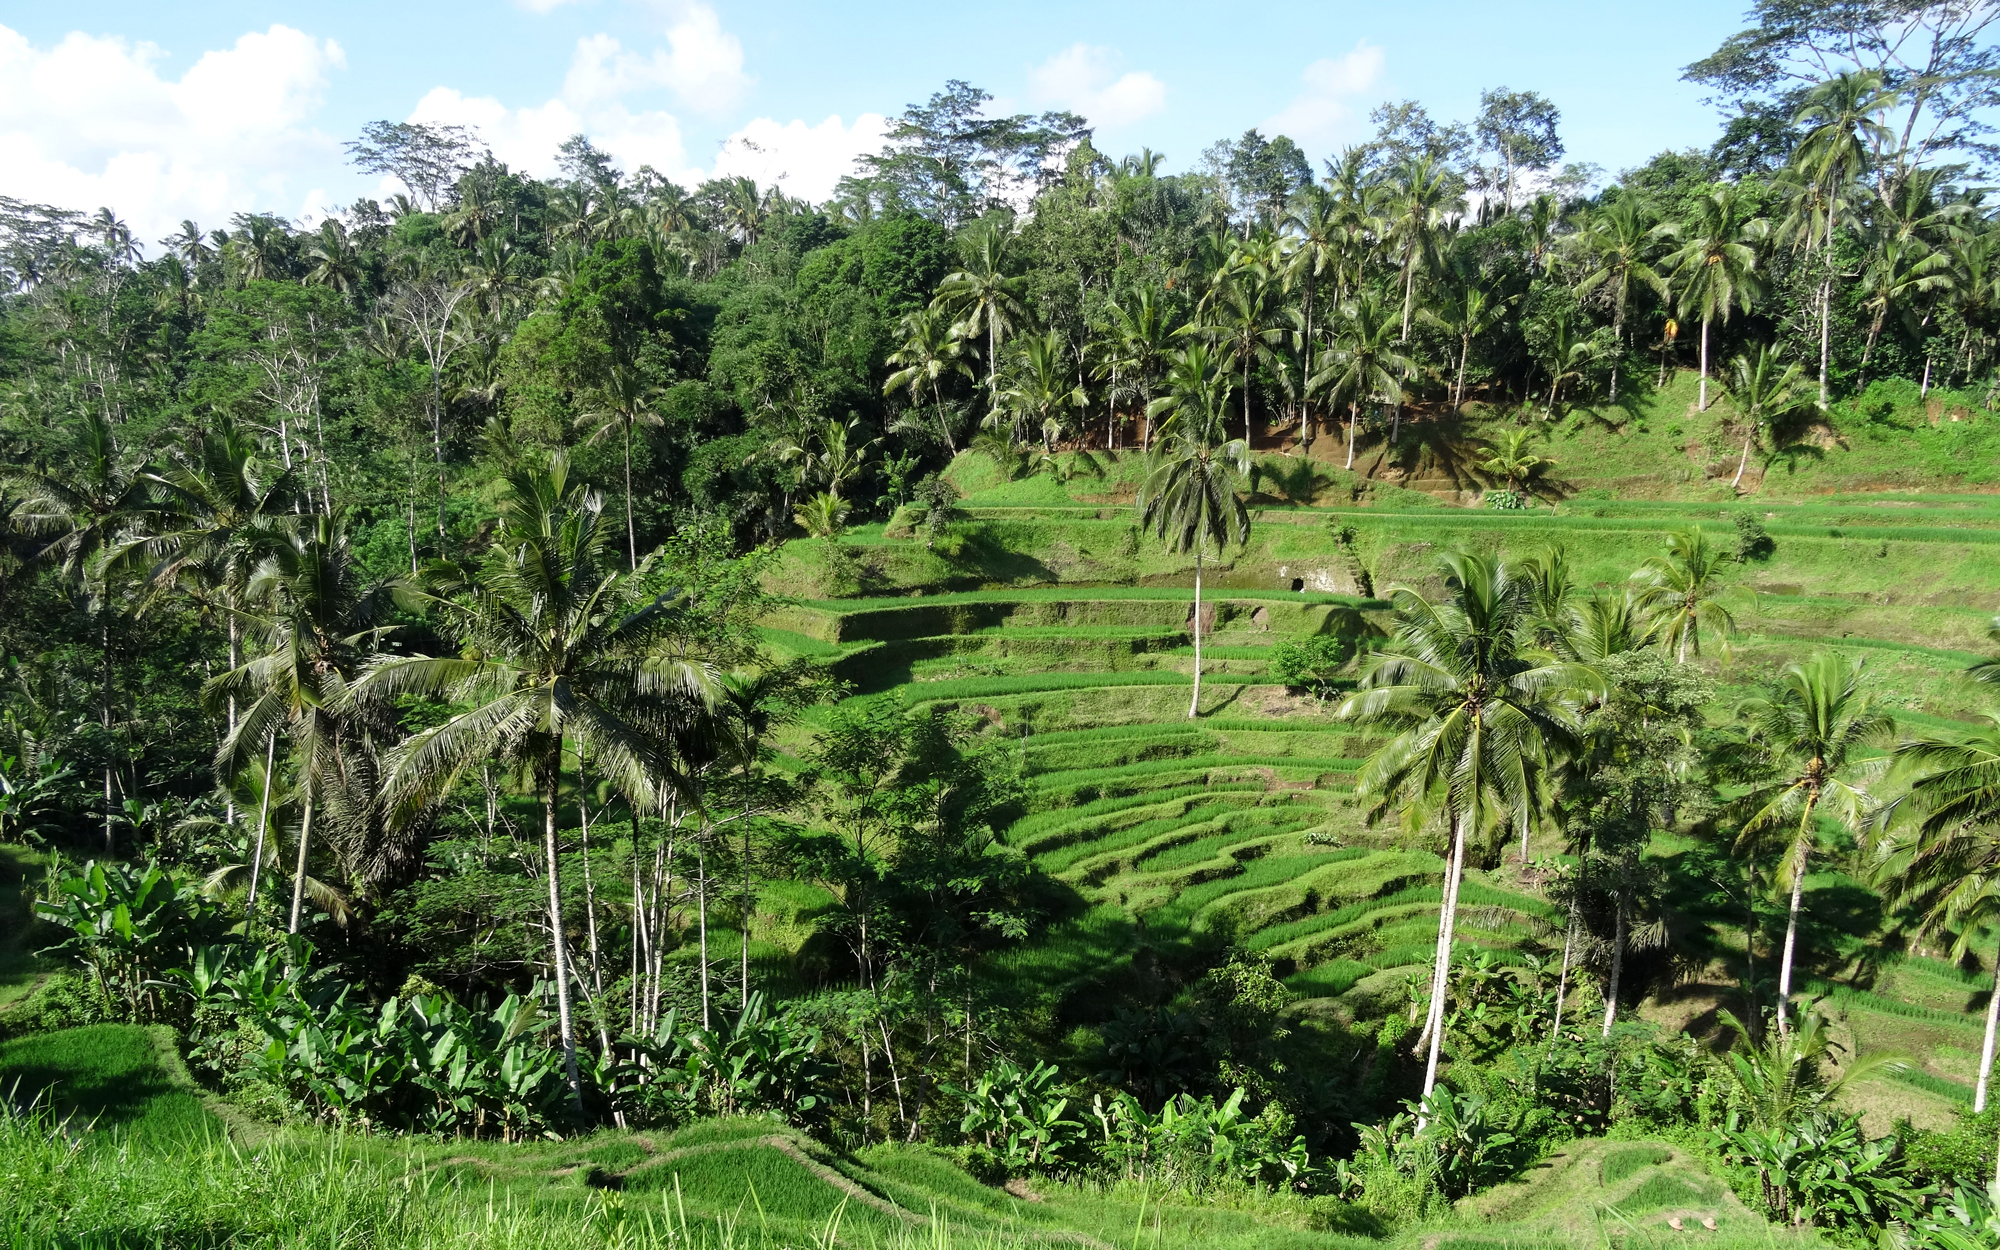 No. 7: Ubud, Indonesia